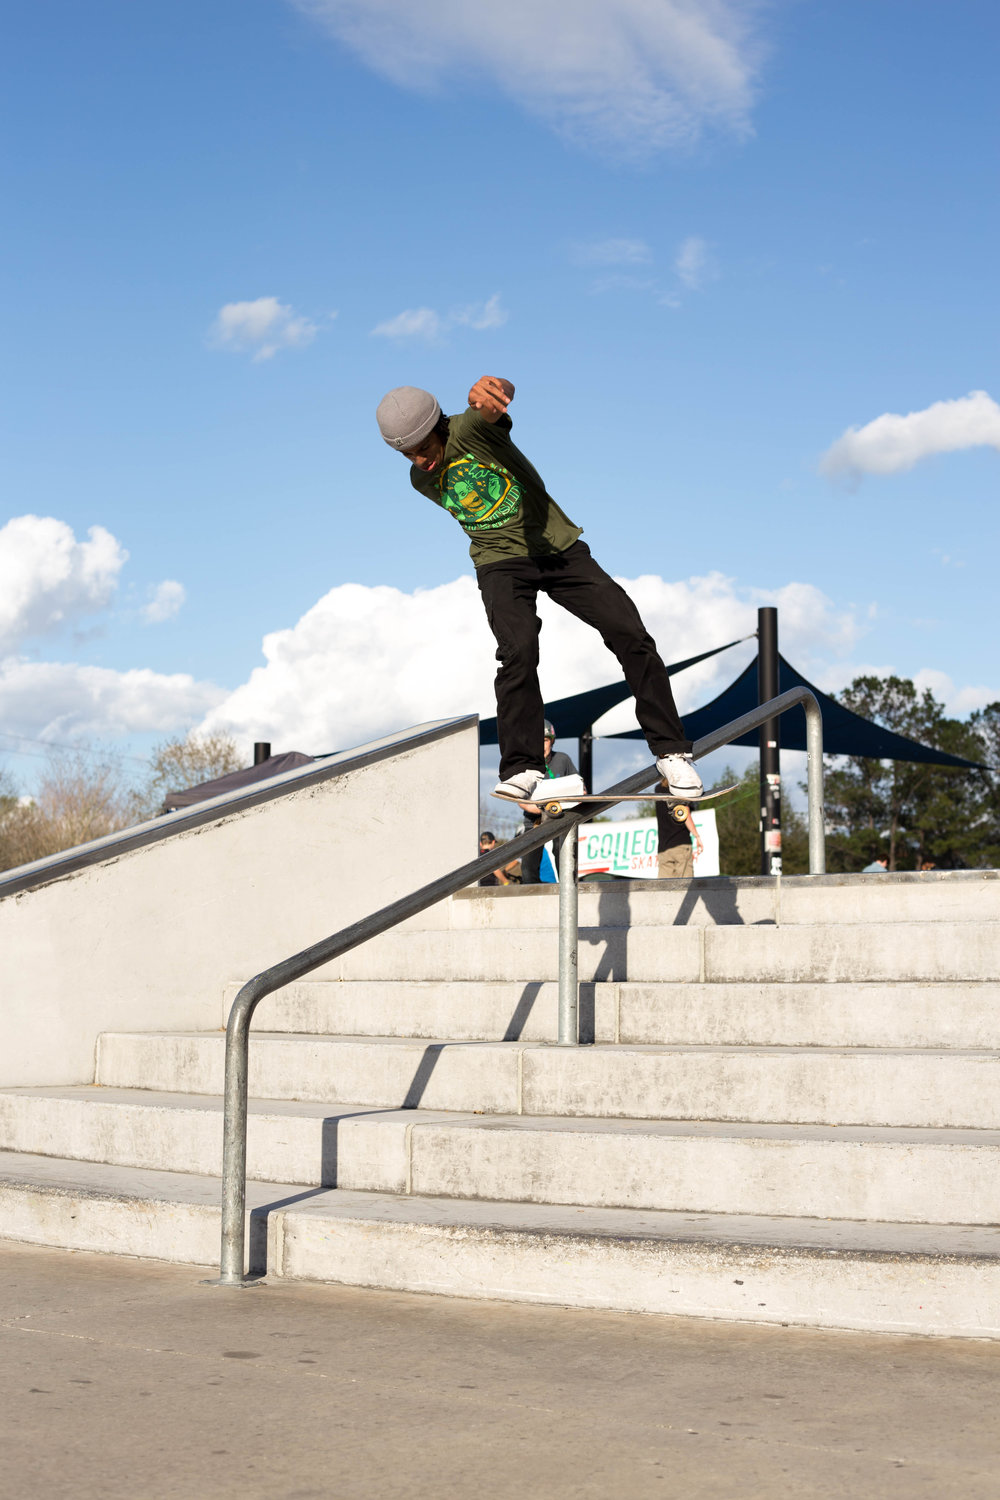 Jordi has a sick backside hurricane on the handrail!